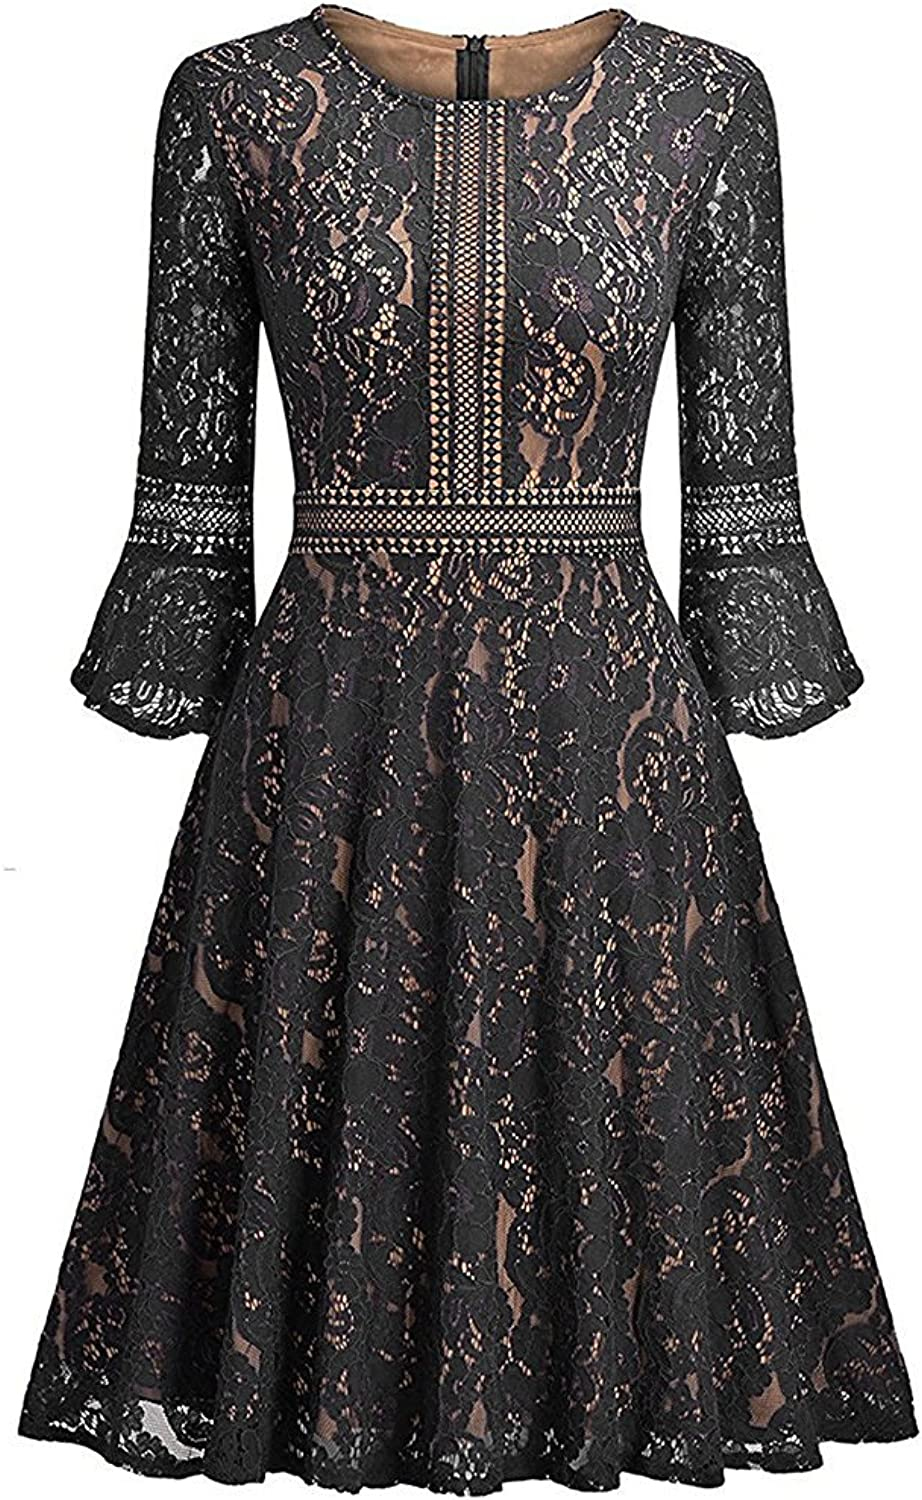 FashionRun Women's Full Lace Contrast Flare Sleeve Big Swing ALine Vintage Dress